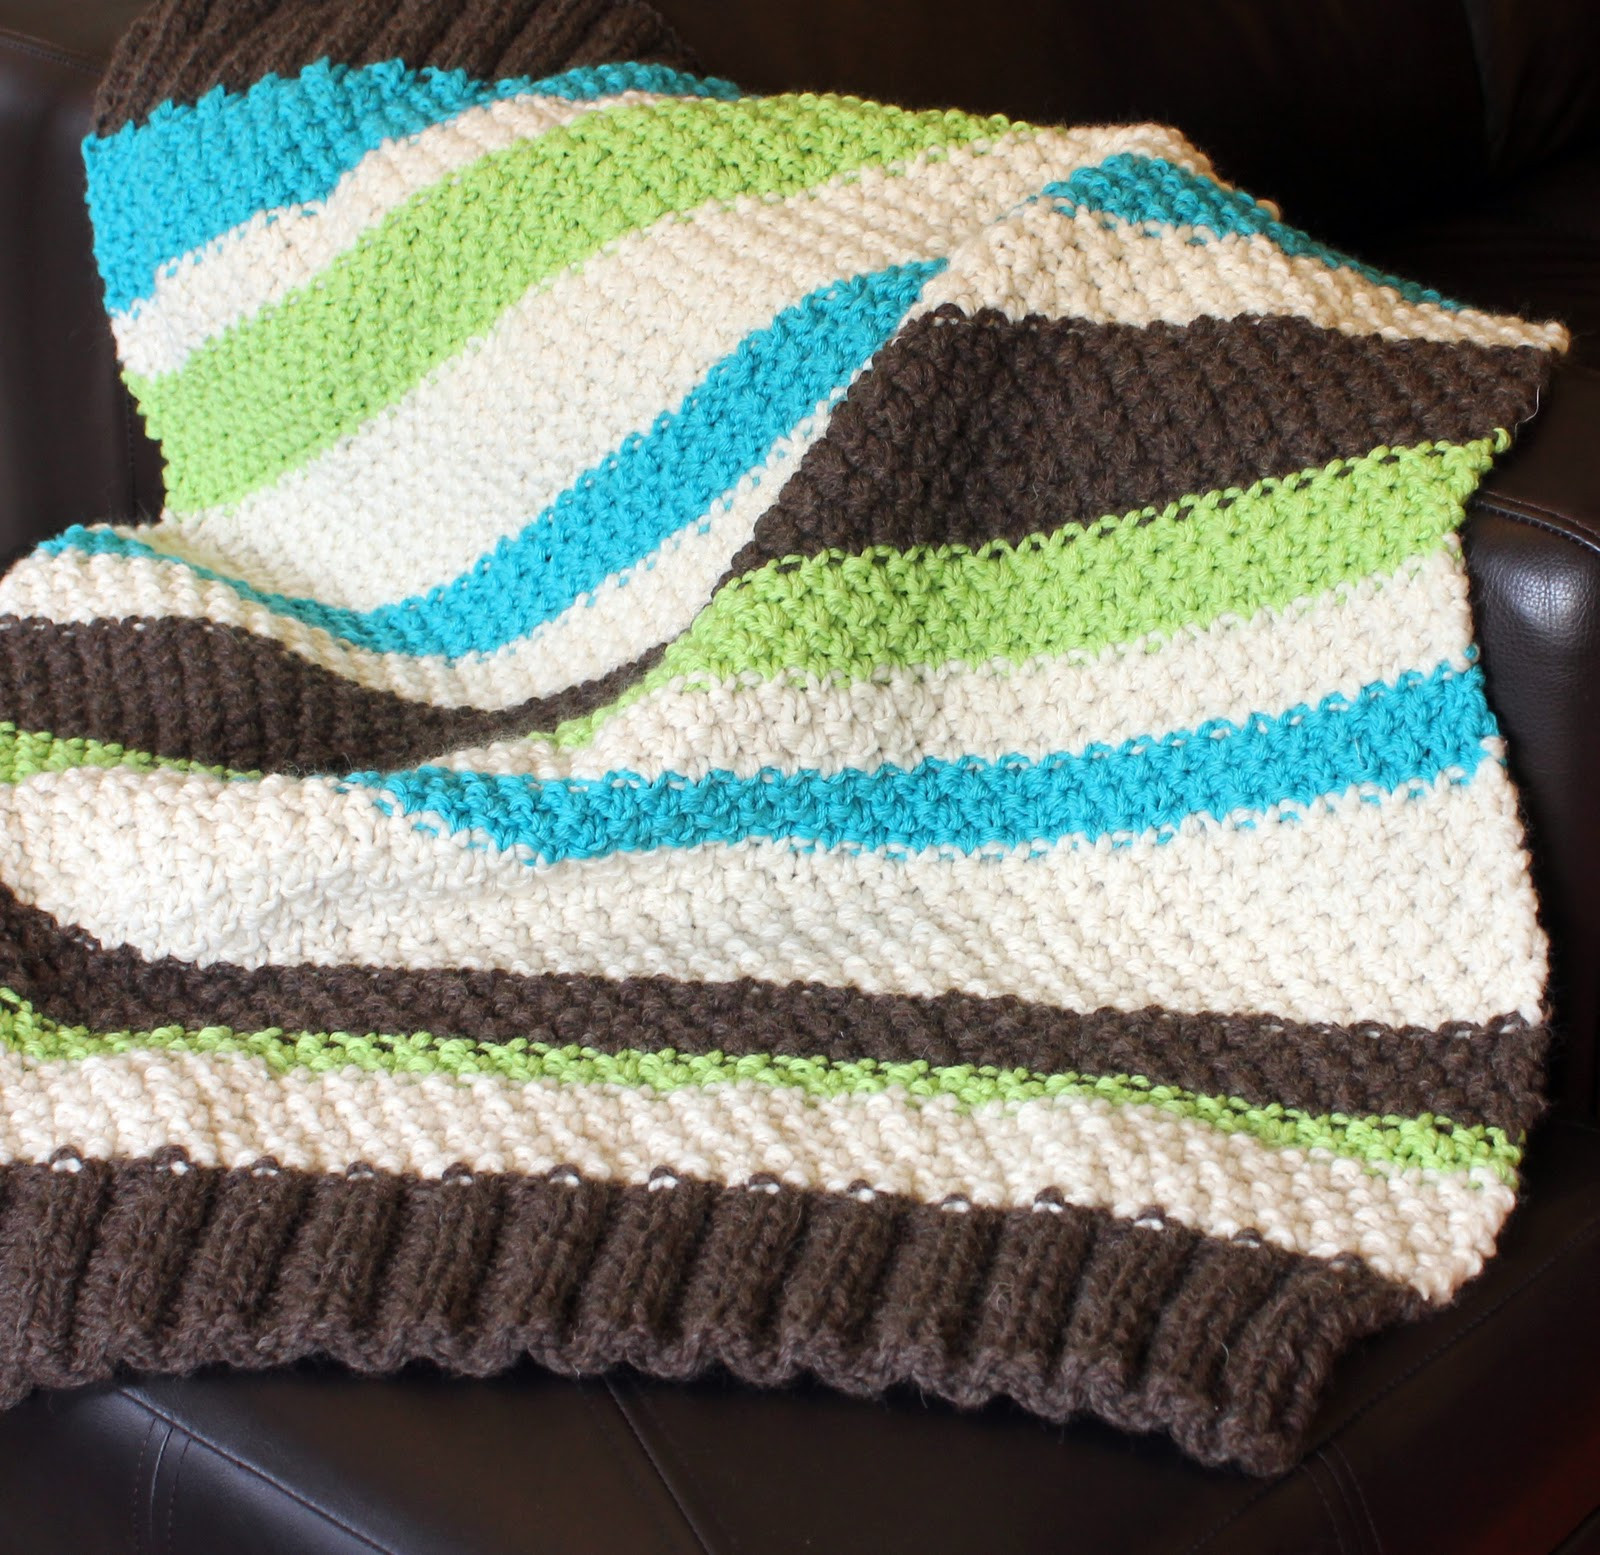 Easy Baby Blanket Patterns New Easy Baby Blanket Knitting Pattern for Beginners with Of Superb 48 Ideas Easy Baby Blanket Patterns